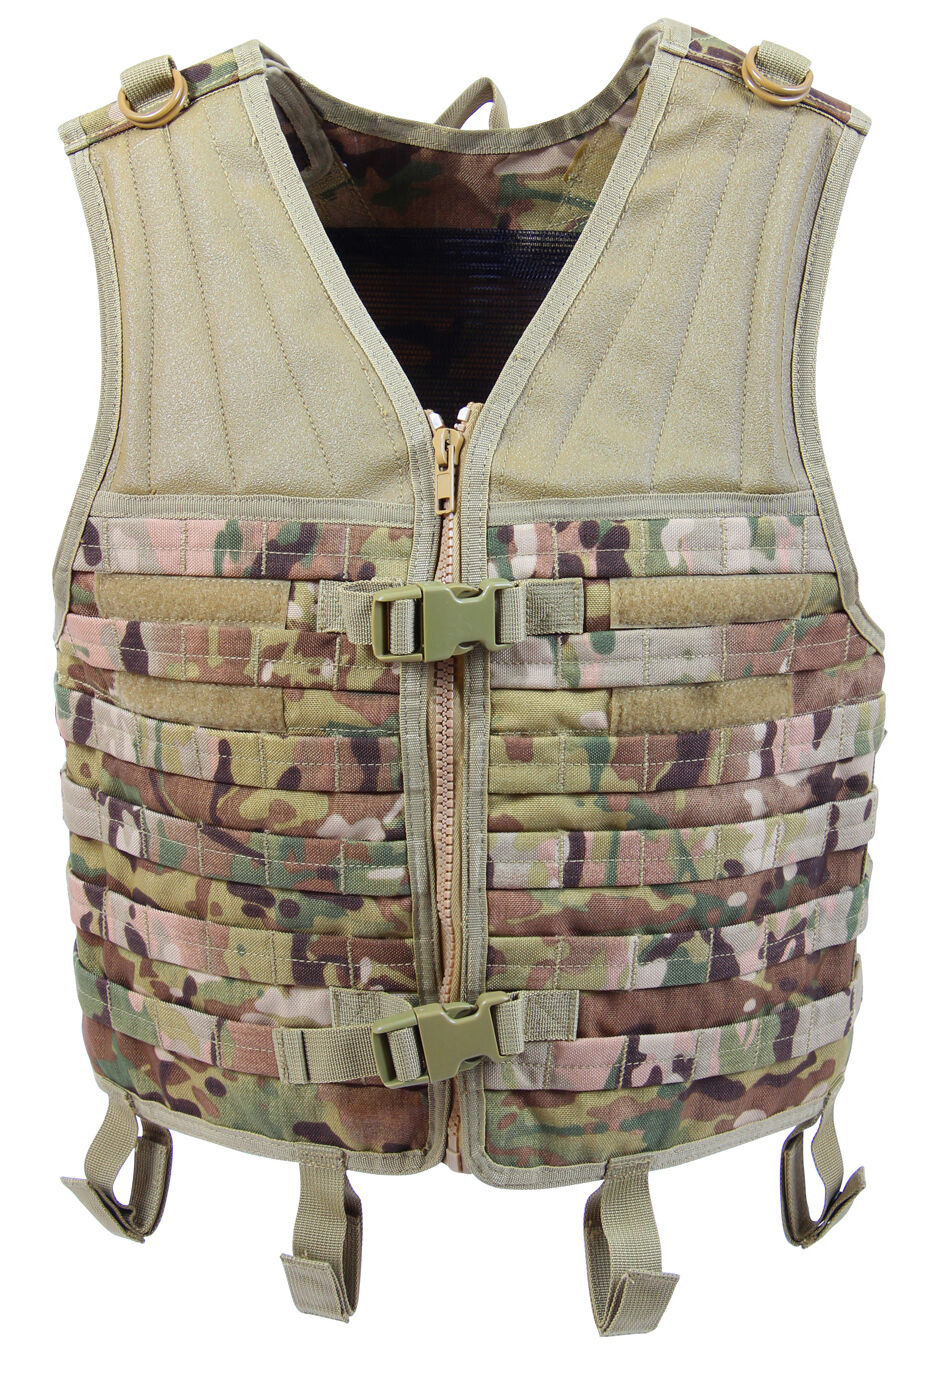 Multicam Camo Modular Military Style Tactical Vest Molle redhco 5408